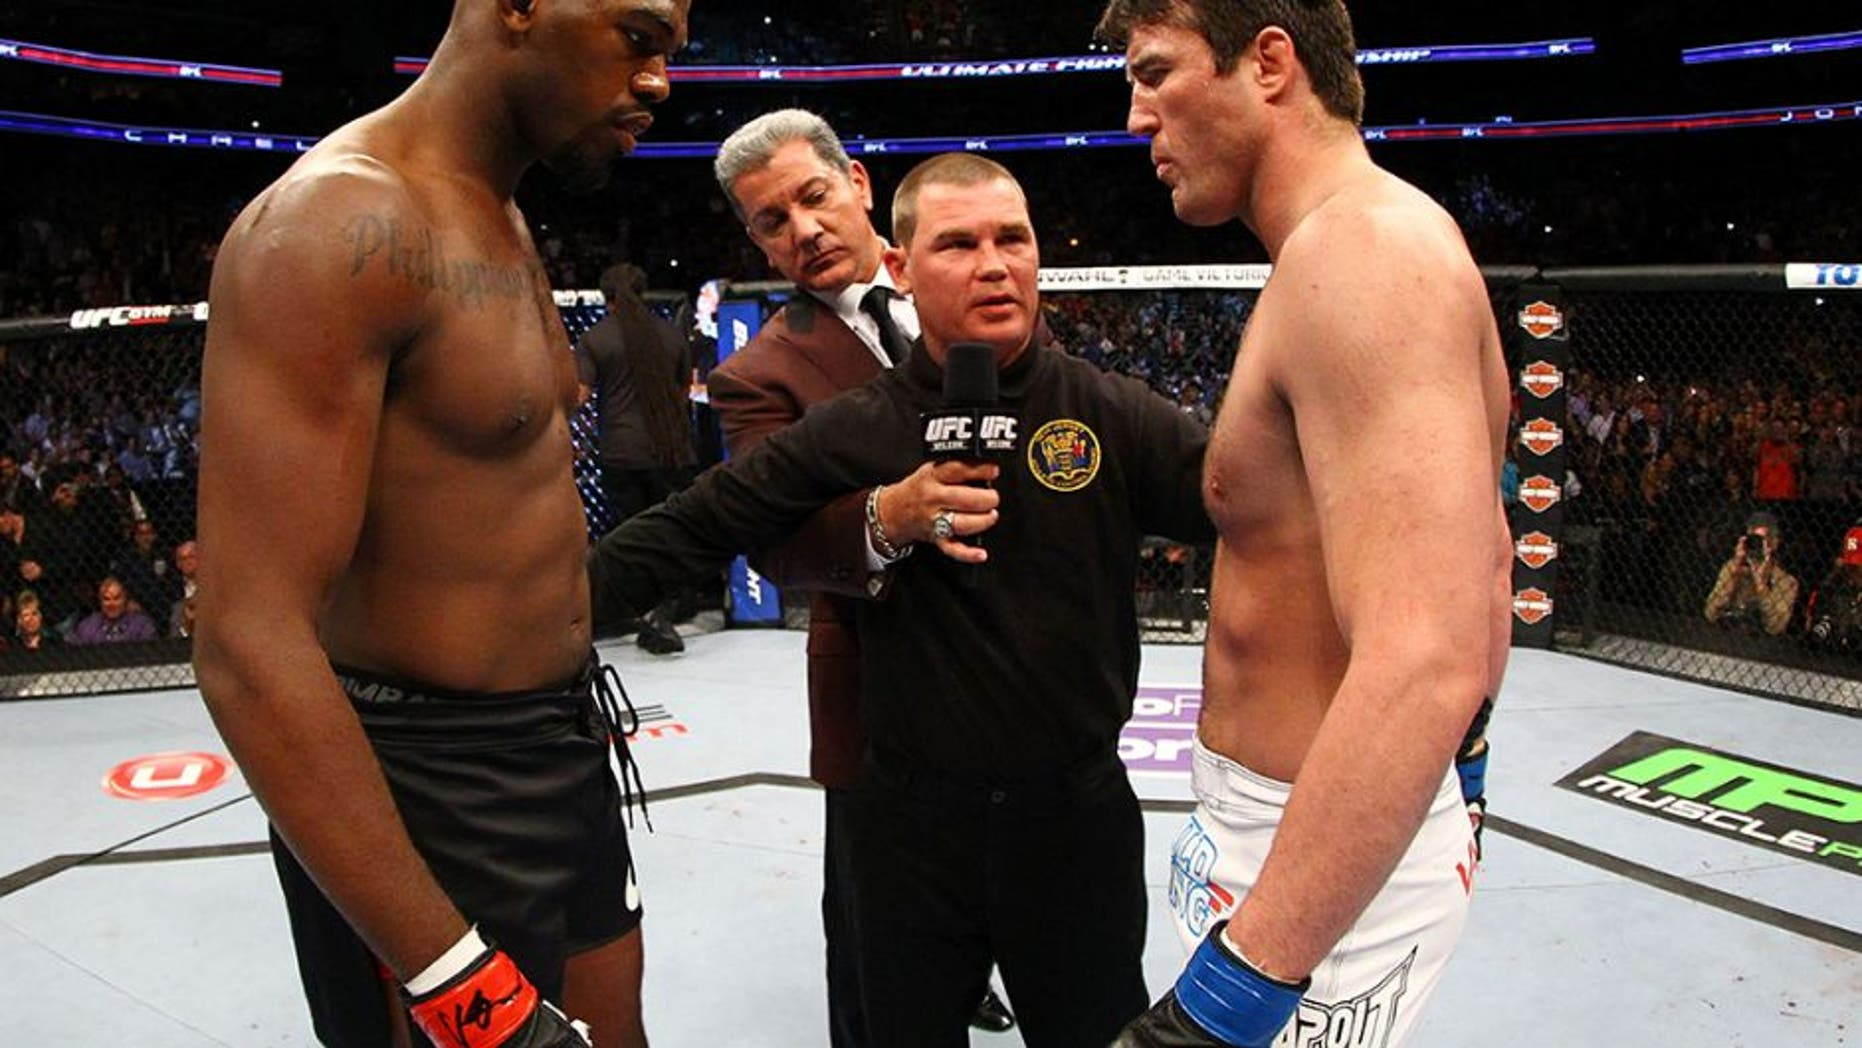 NEWARK, NJ - APRIL 27: Jon Jones and Chael Sonnen face off before their light heavyweight championship bout during the UFC 159 event at the Prudential Center on April 27, 2013 in Newark, New Jersey. (Photo by Al Bello/Zuffa LLC/Zuffa LLC Via Getty Images)